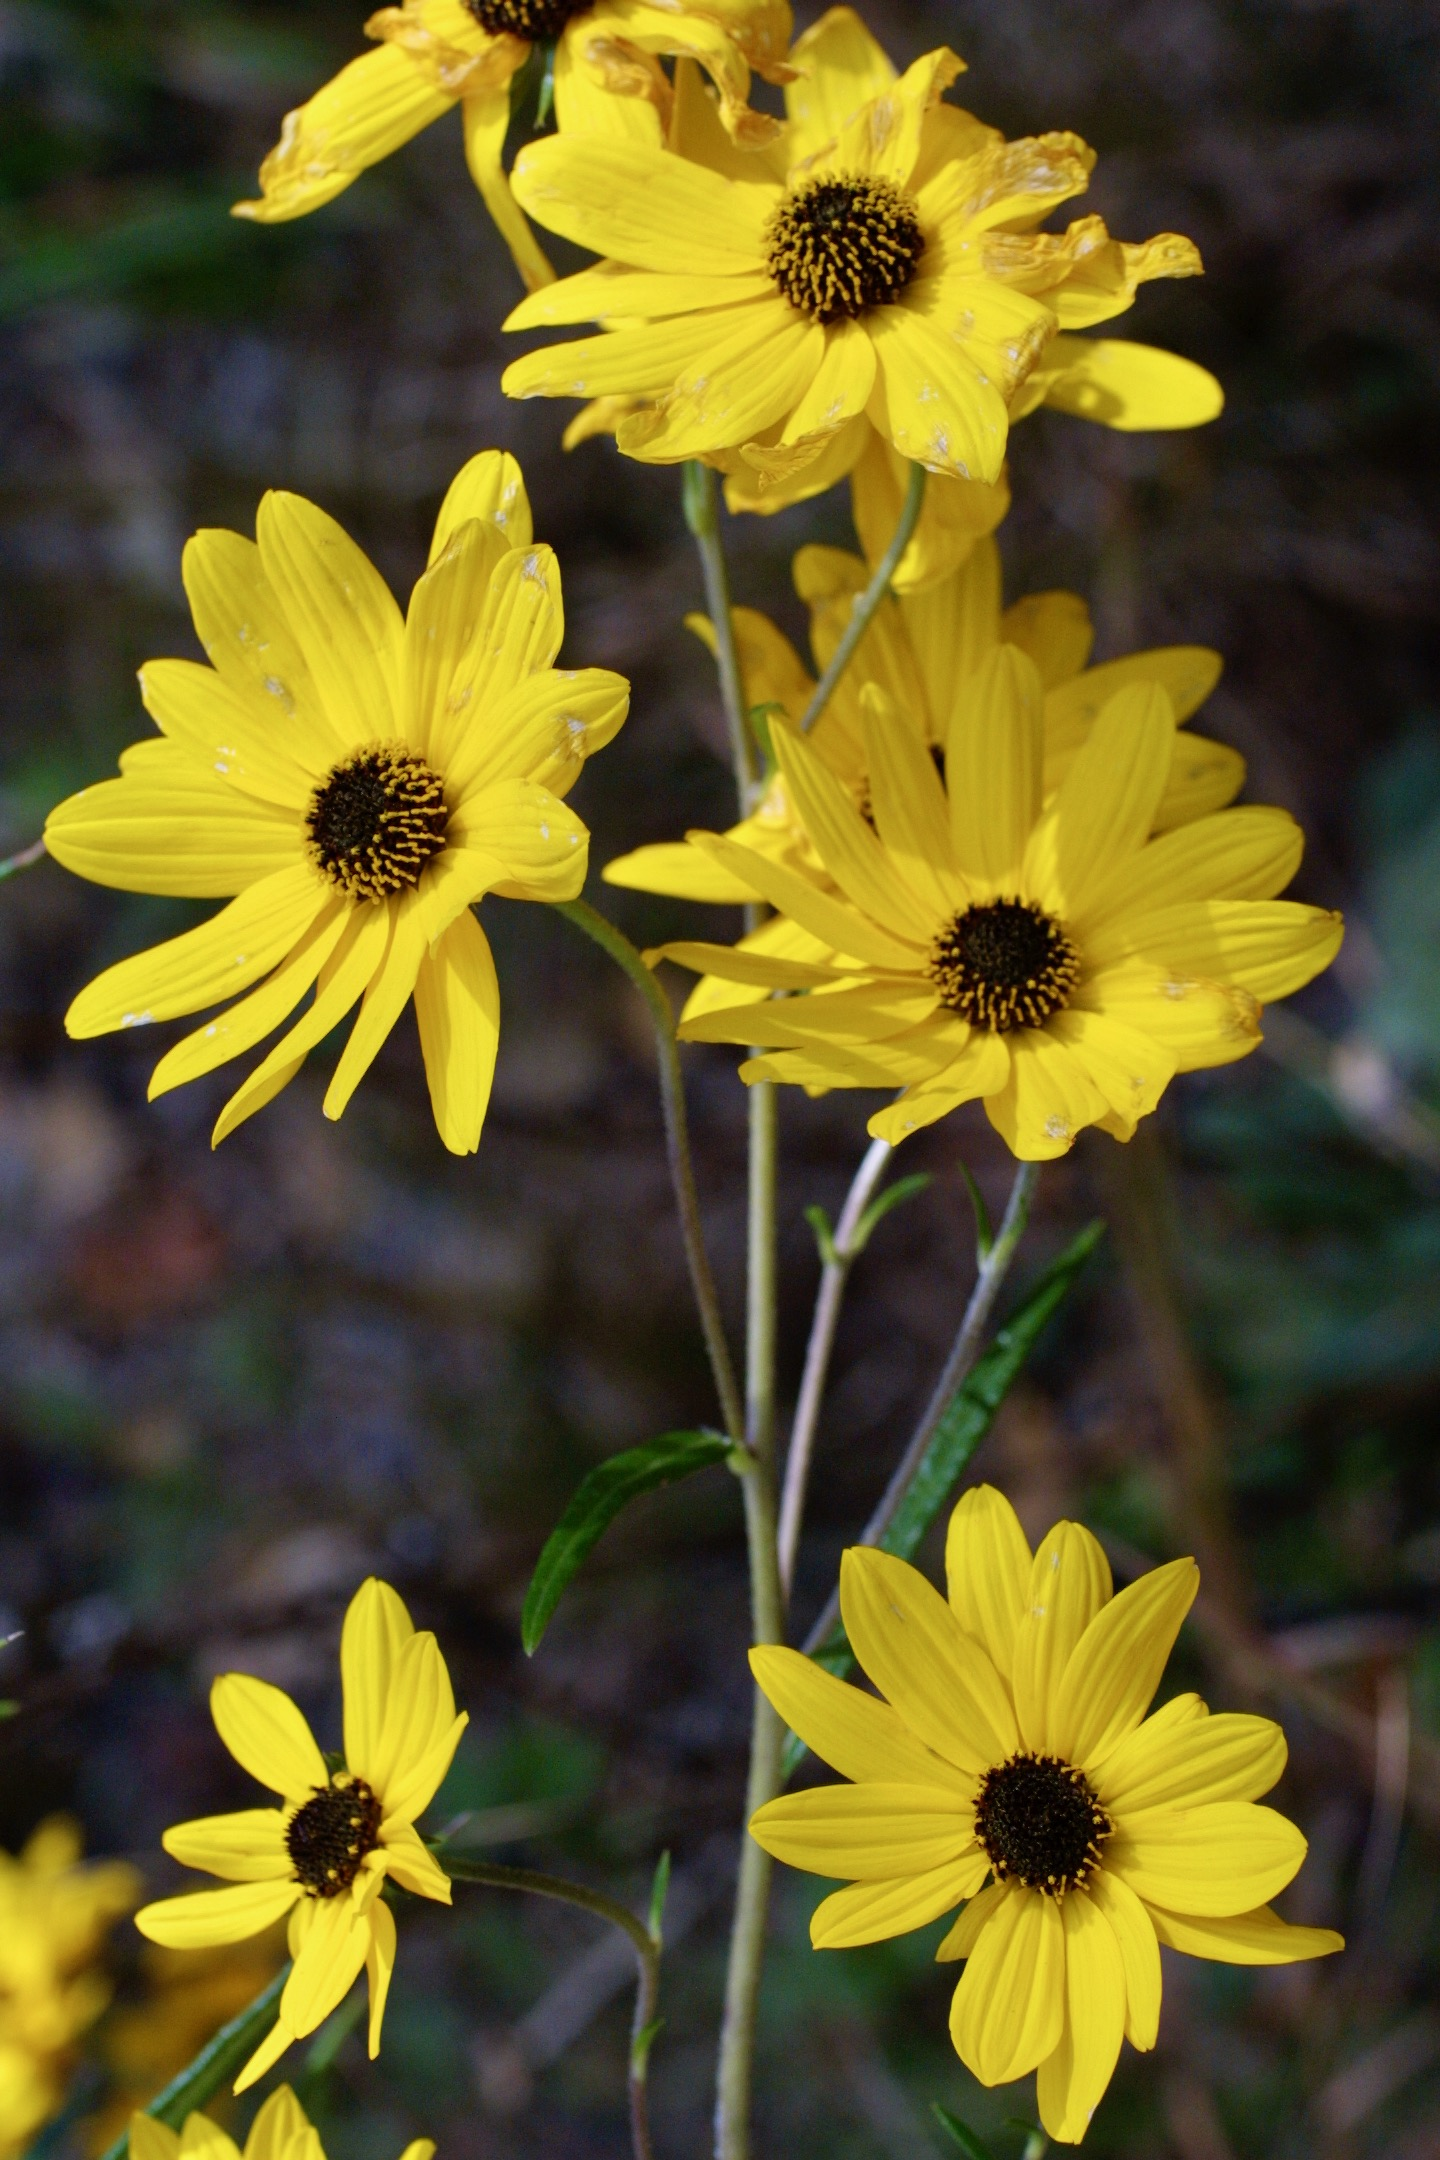 The Scientific Name is Helianthus angustifolius. You will likely hear them called Narrowleaf Sunflower, Swamp Sunflower. This picture shows the Narrow, sessile leaves with up to 21 ray florets and a deep red to purplish disk of Helianthus angustifolius